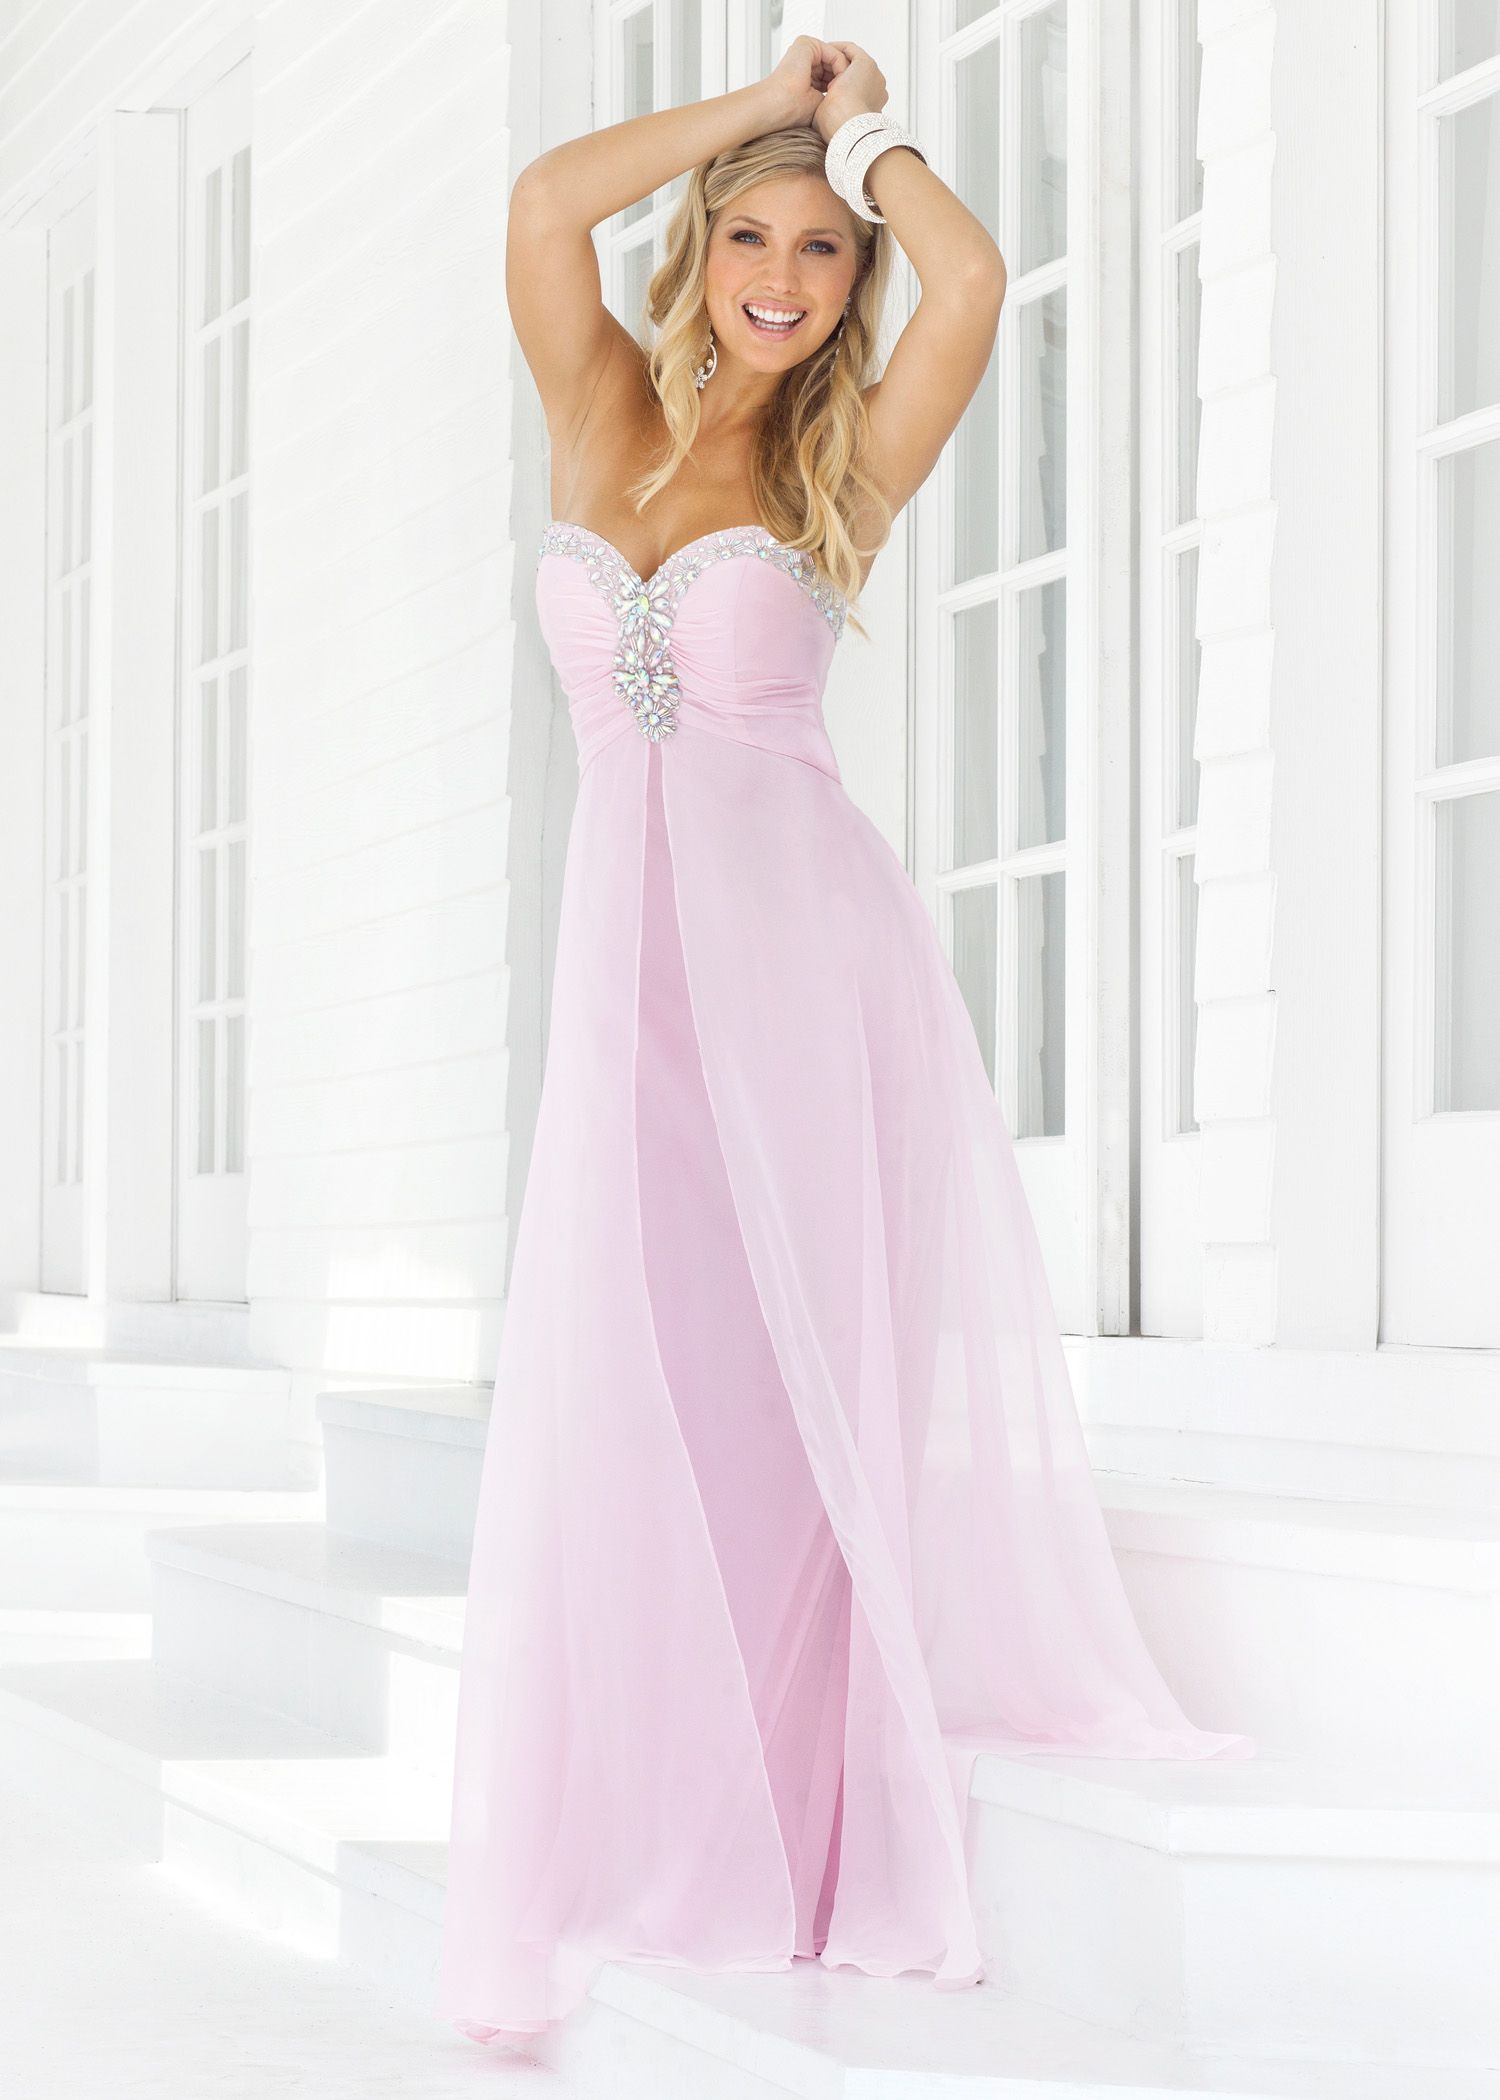 blush prom 9388 | Blush Prom 9388 Crystal Pink Long Strapless Prom ...